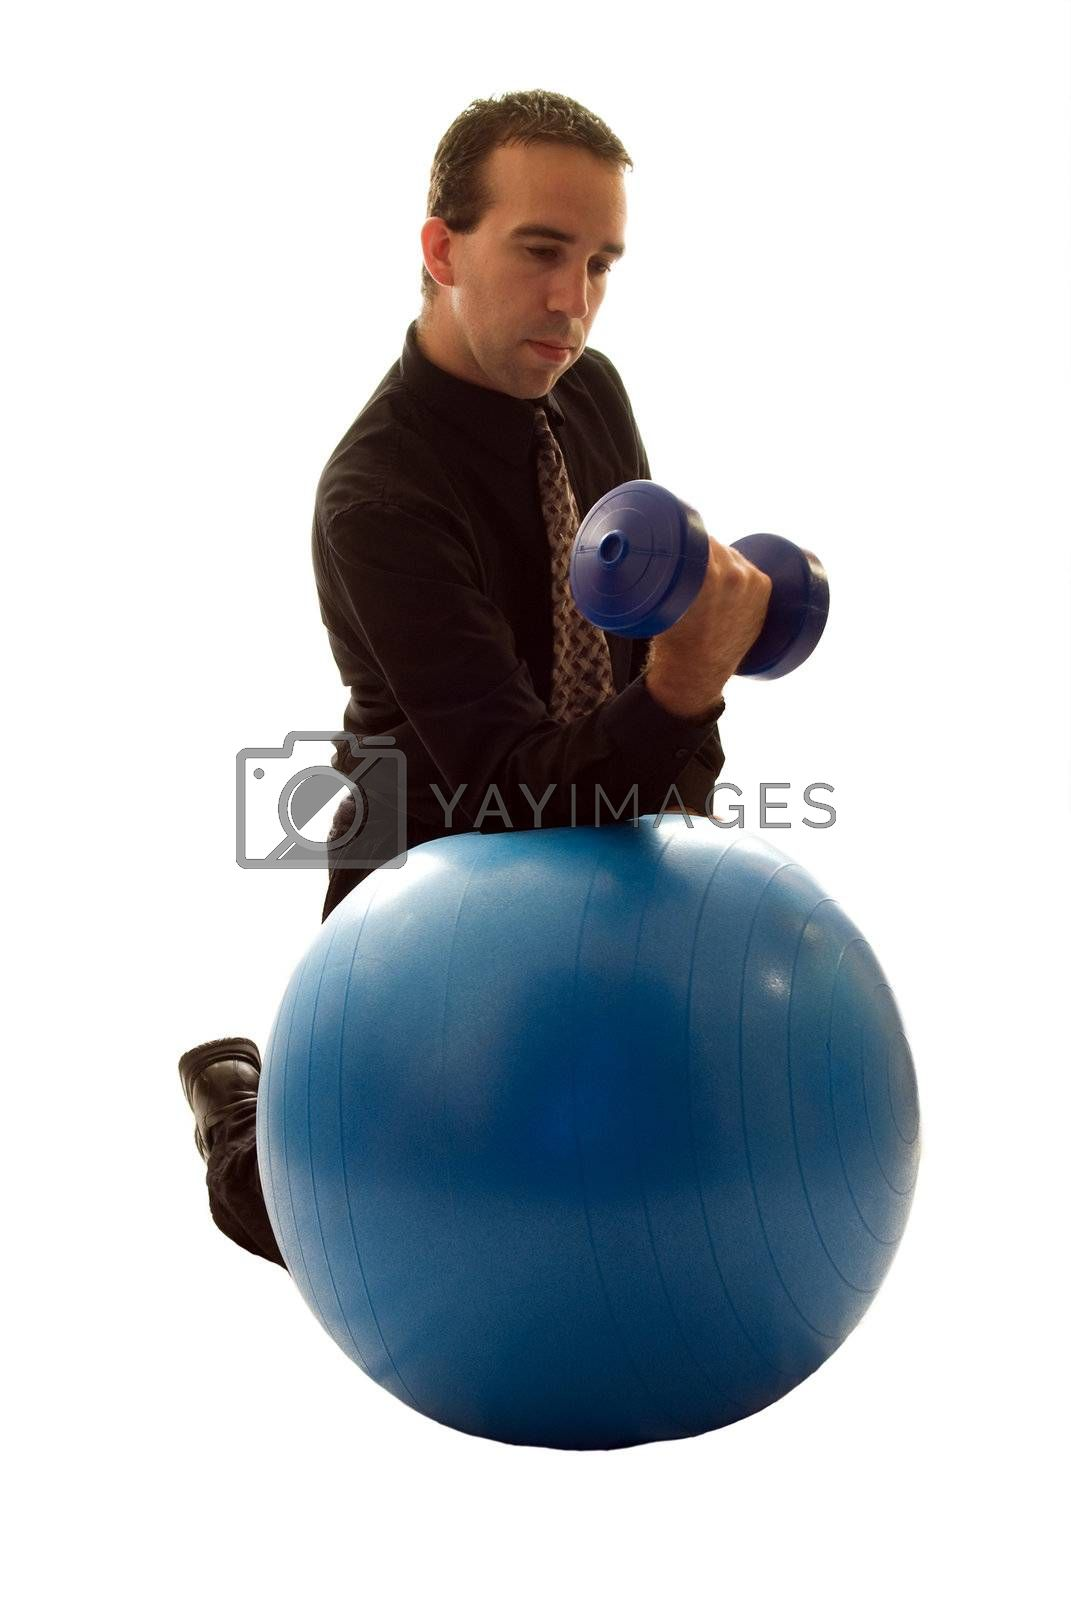 Businessman using a yoga ball and weights to help relieve stress